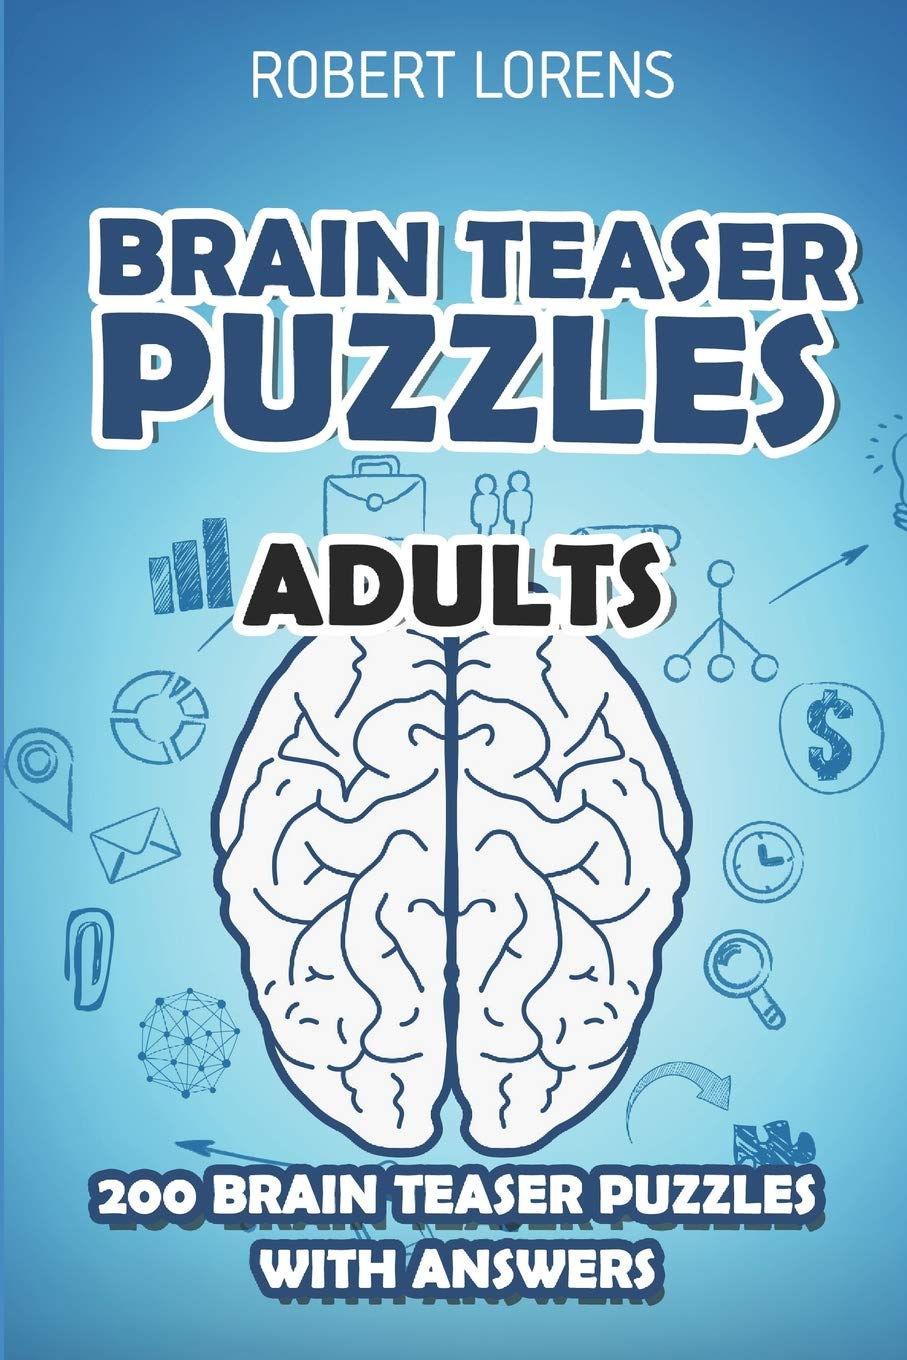 Brain Teaser Puzzles Adults: Walls Puzzles - 200 Brain